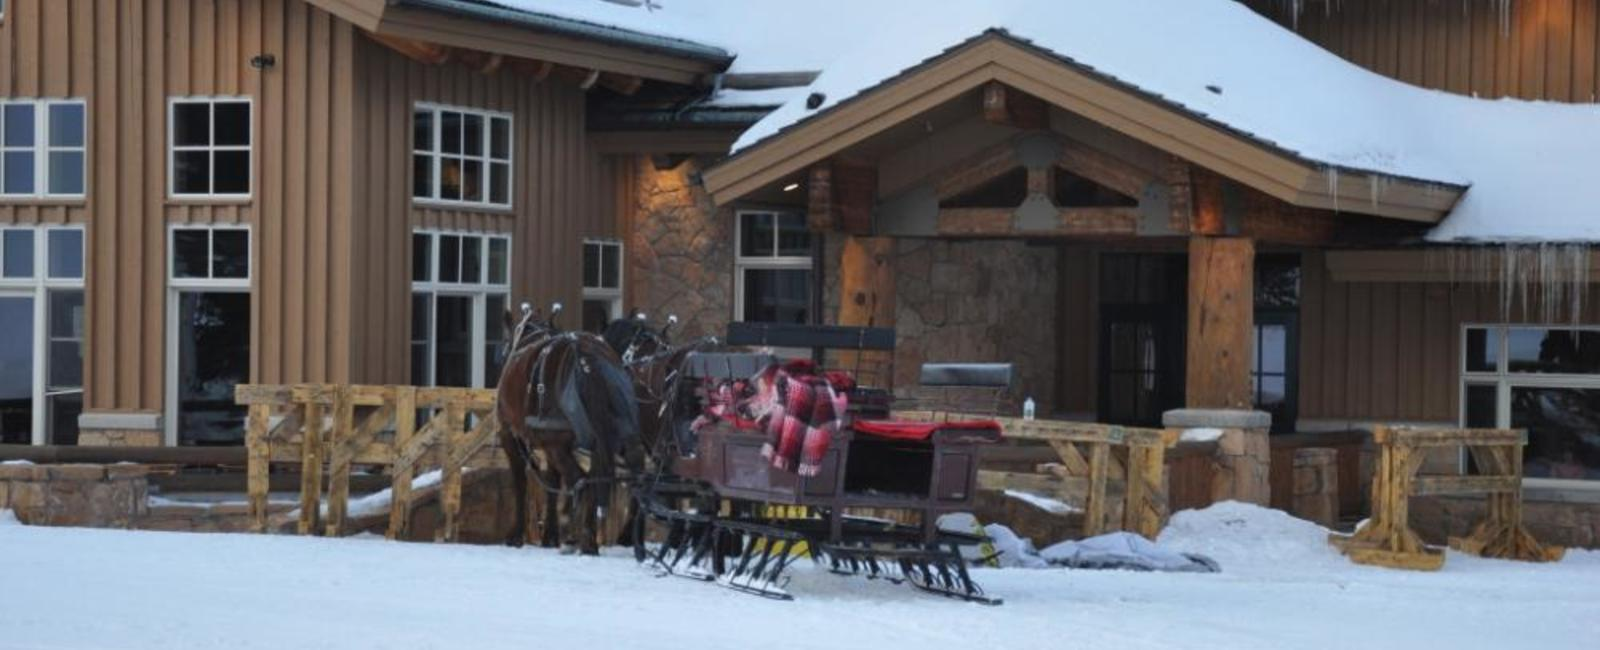 Fireside dining and a sleigh ride at Deer Valley